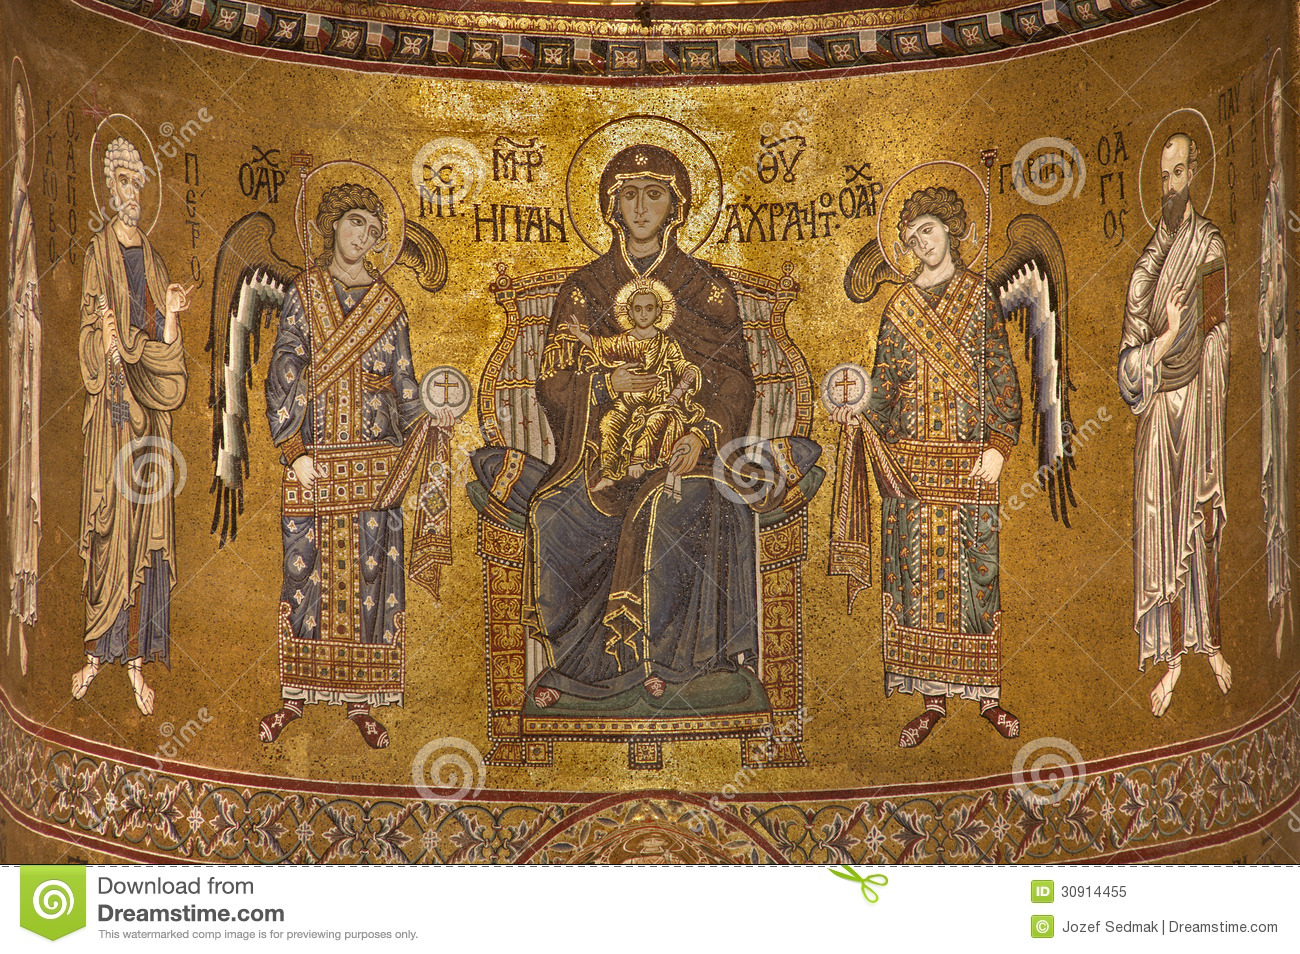 palermo madonna and angels from main apse of monreale cathedral